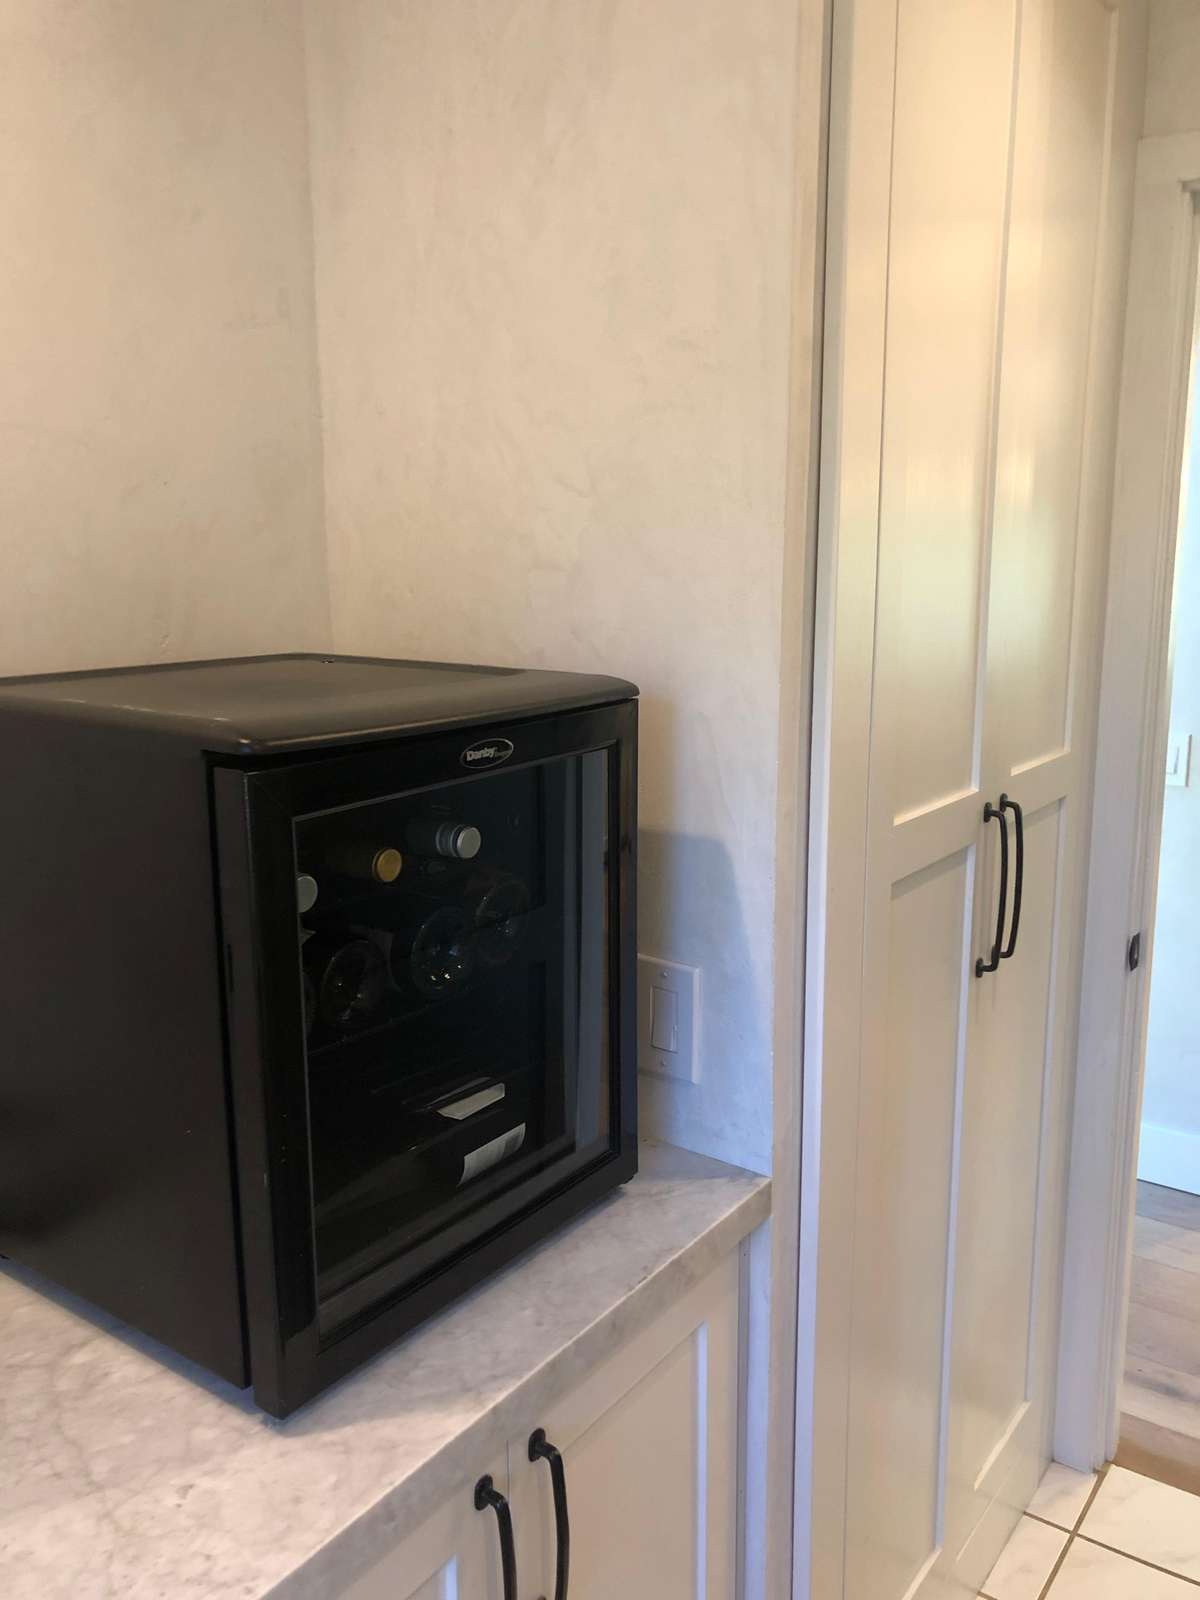 Small Wine Refrigerator in Pantry Area